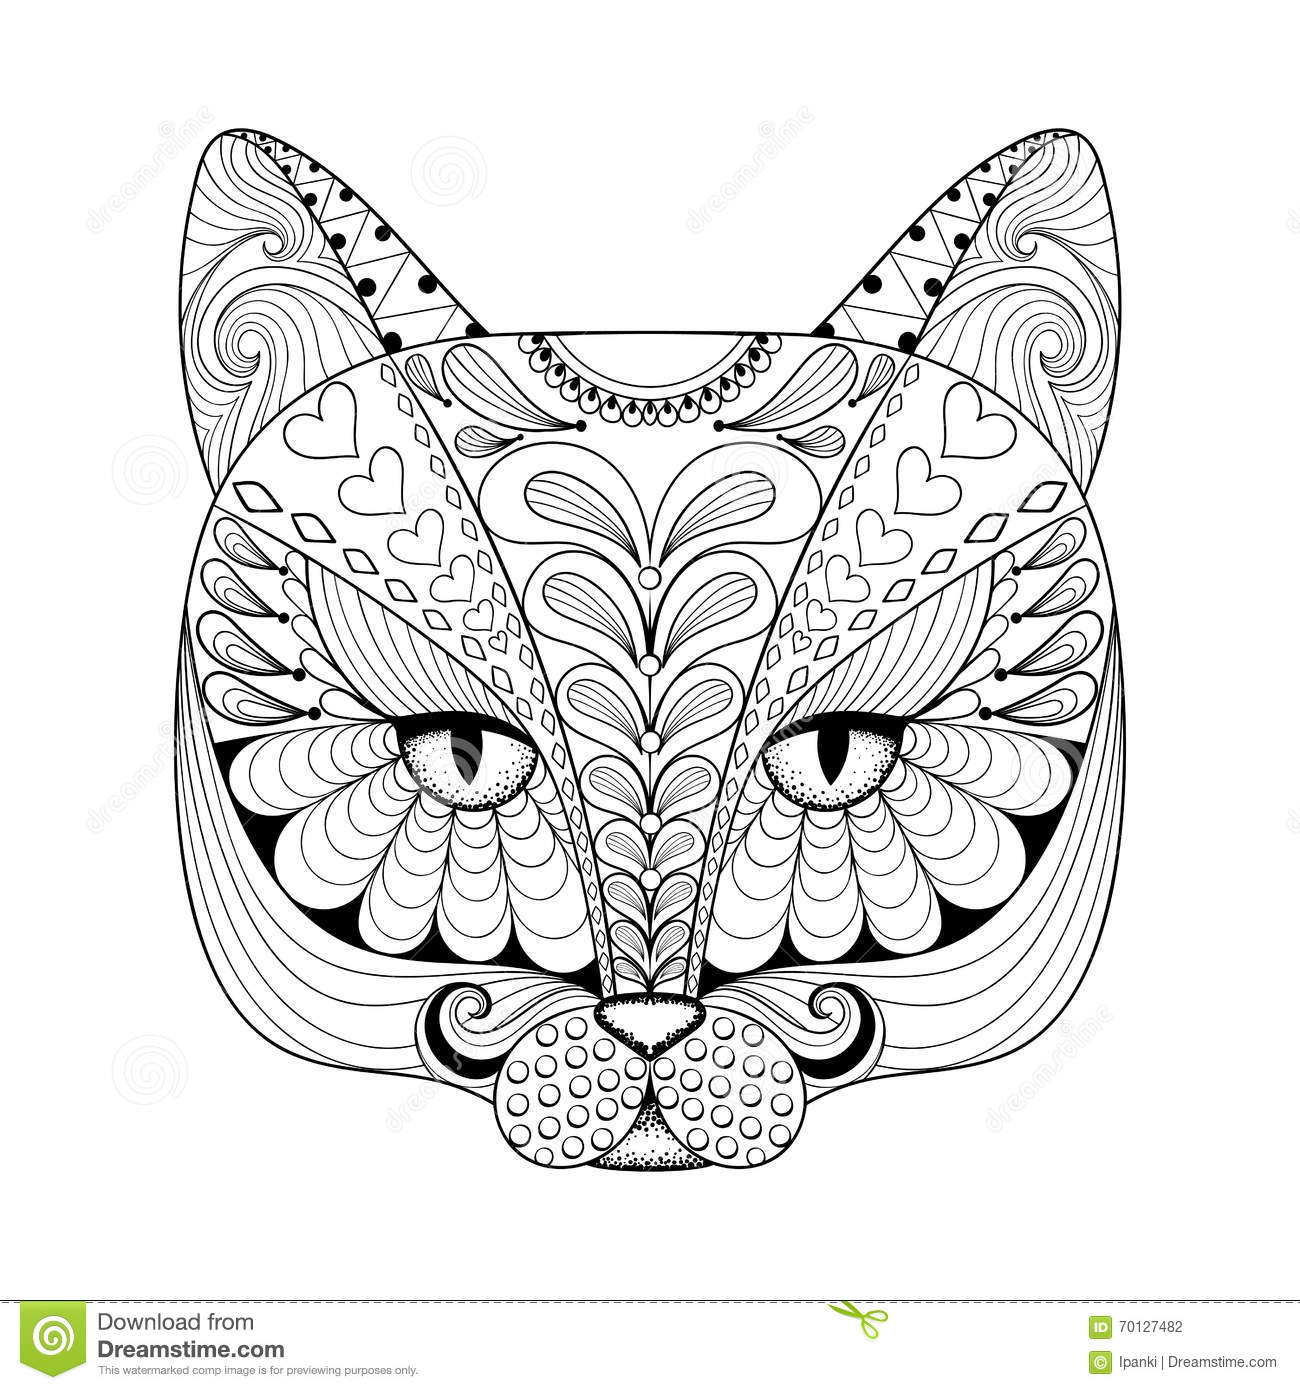 Zen cat coloring page - Vector Zentangle Cat Print For Adult Coloring Page Hand Drawn A